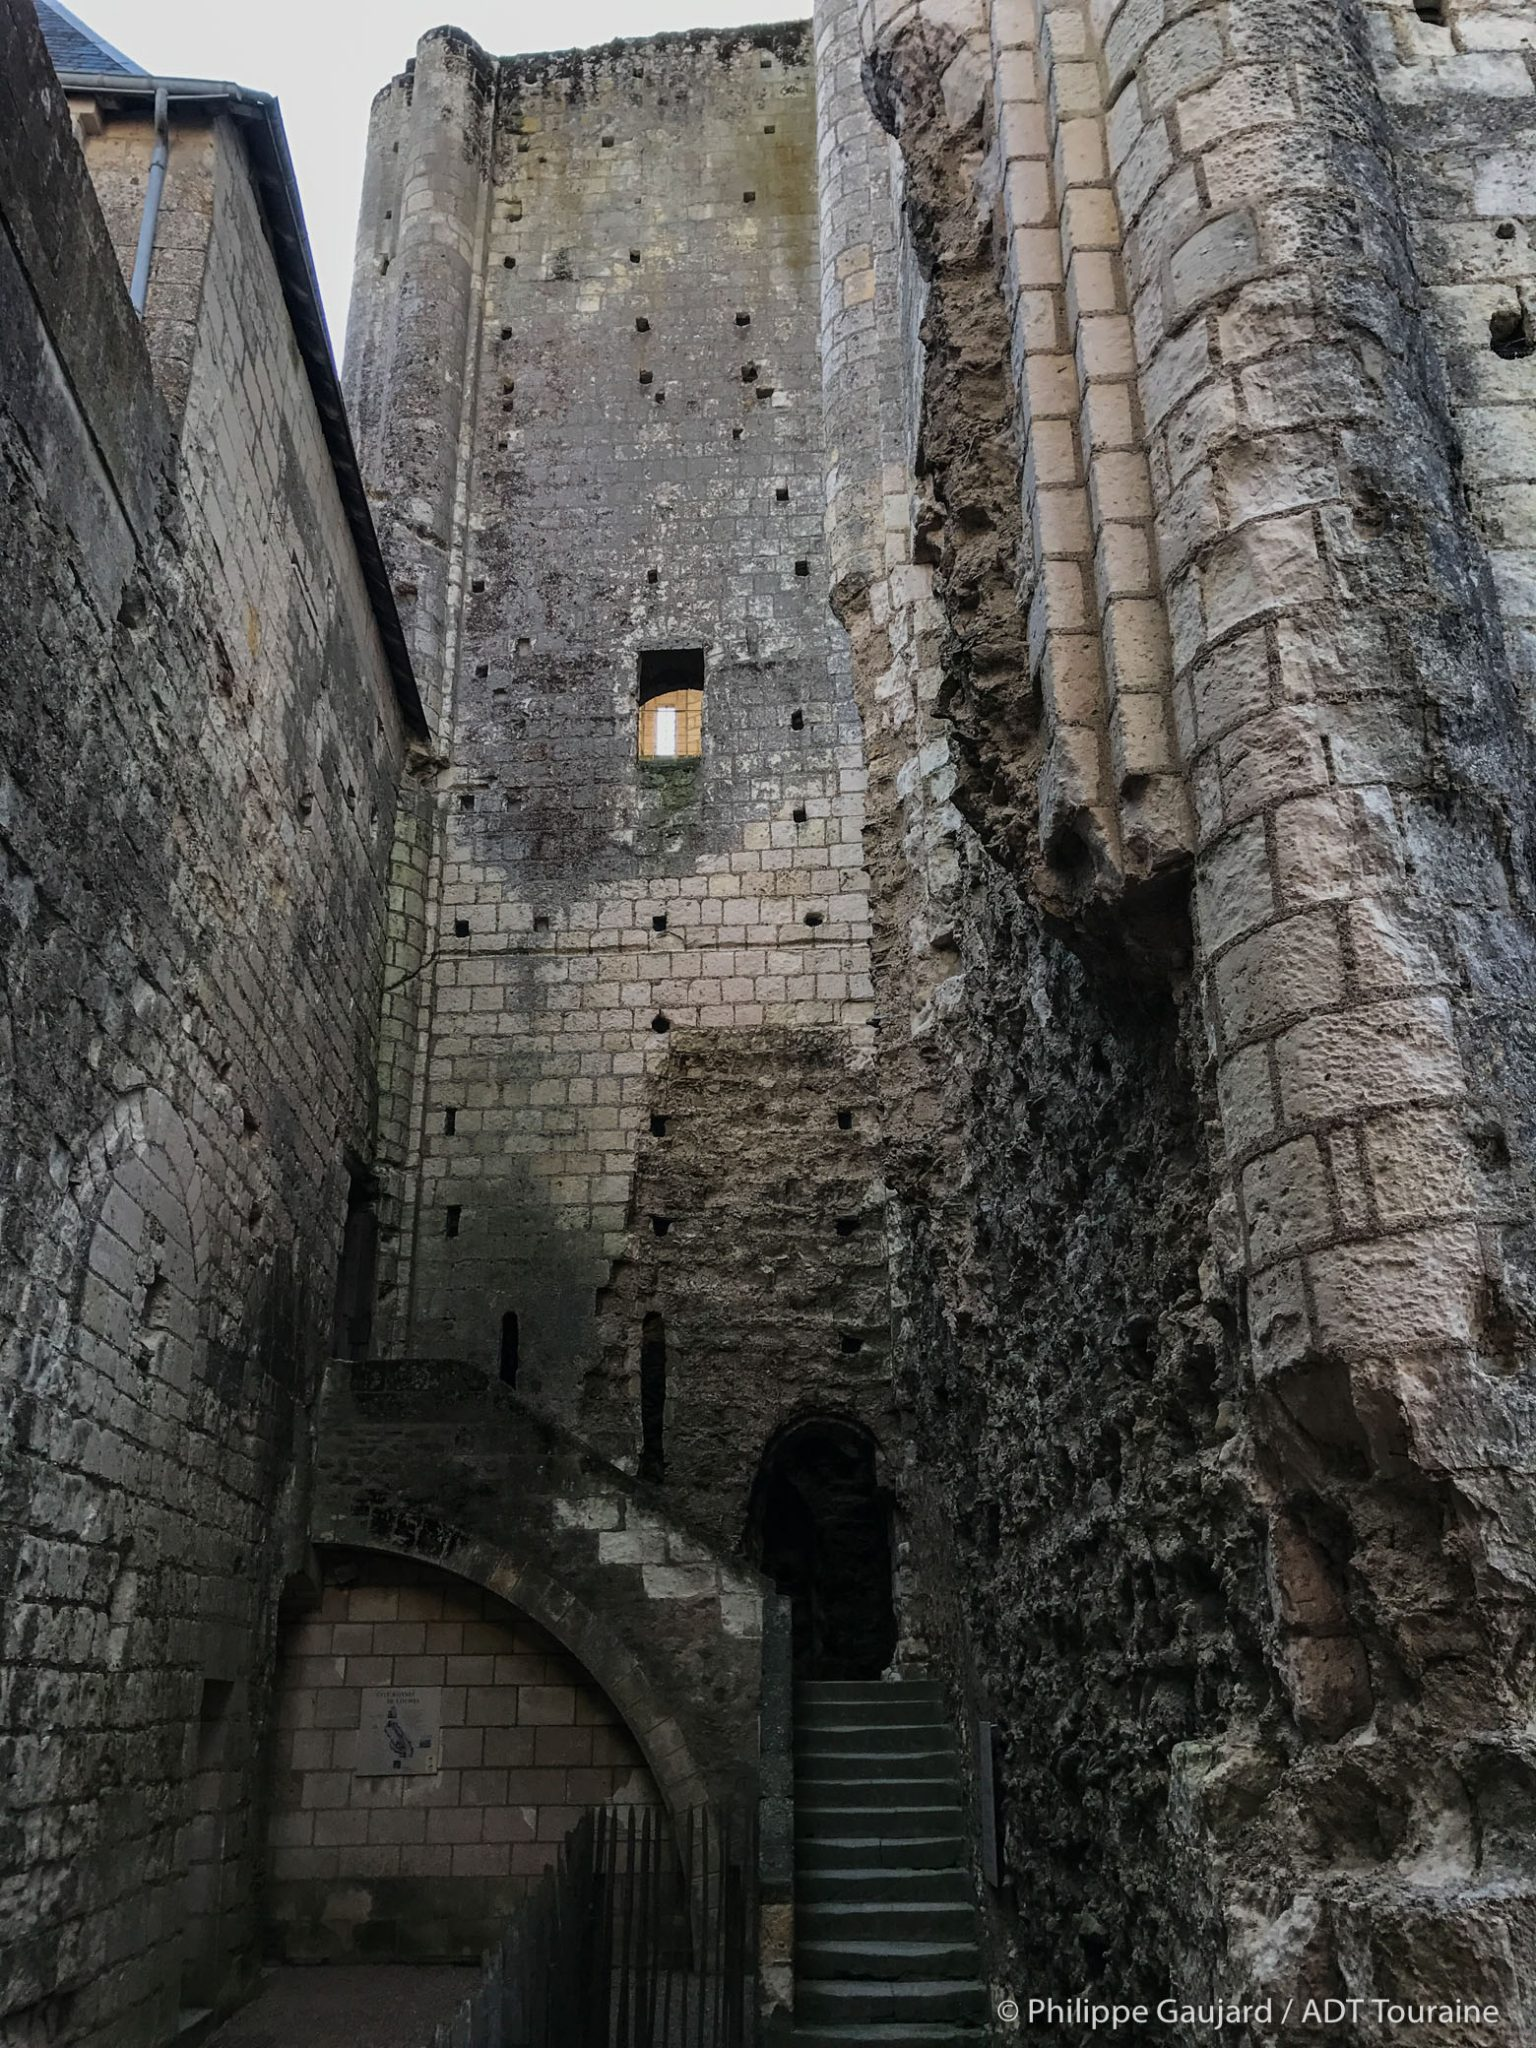 Keep of the chateau of Loches, near the Indre River and near the house of Lansyer. Holiday in Region Centre Val de Loire, France.